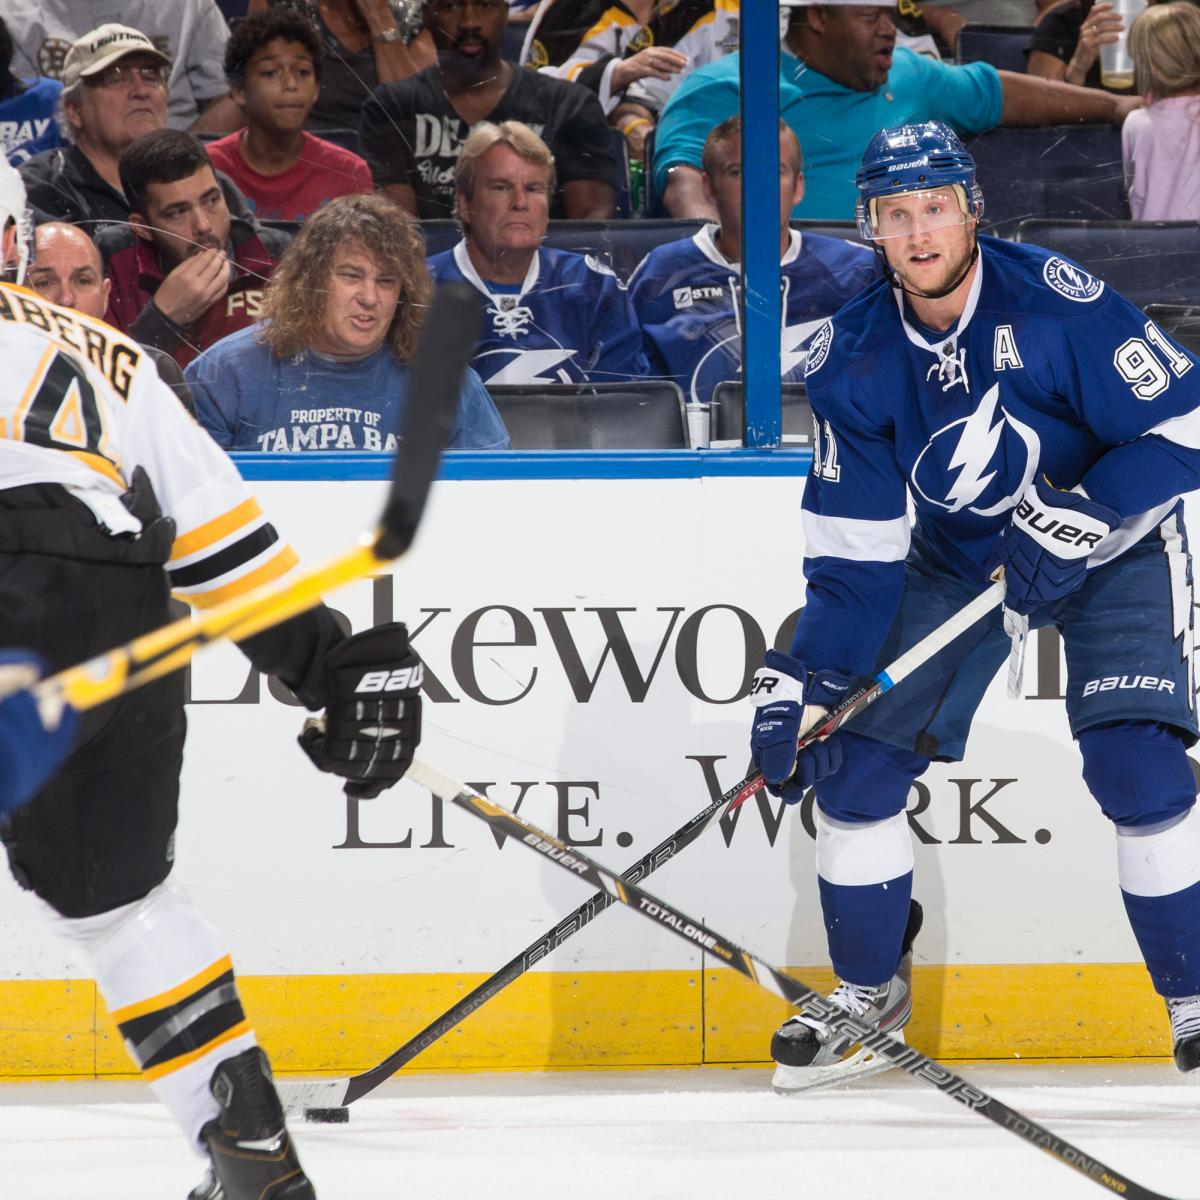 Tampa Bay Lightning vs. Boston Bruins: Tweets and ...Bruins Bleacher Report